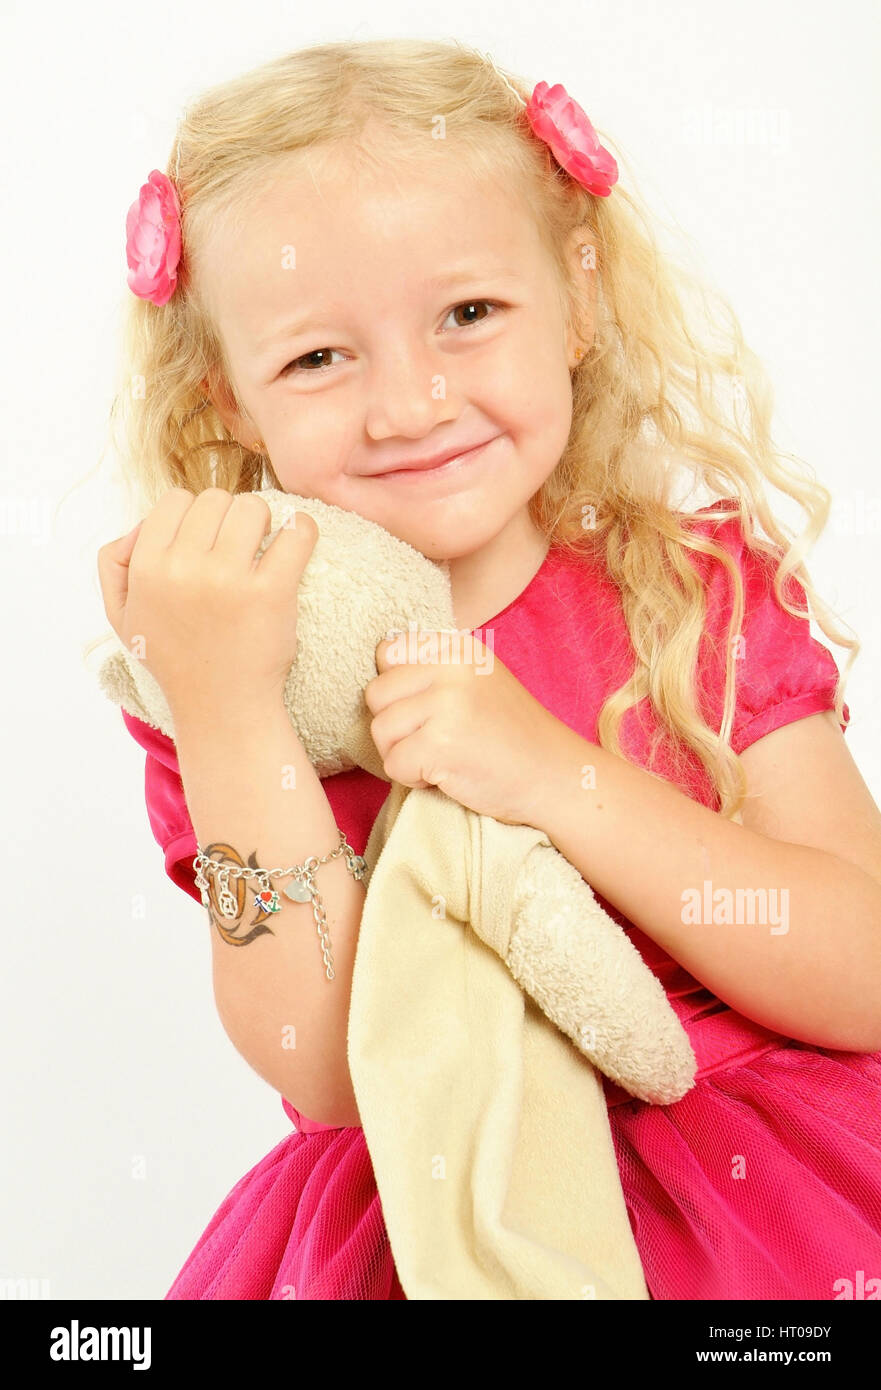 Maedchen, 5 Jahre, mit Stofftier - girl, 5 years old, with toy Stock Photo